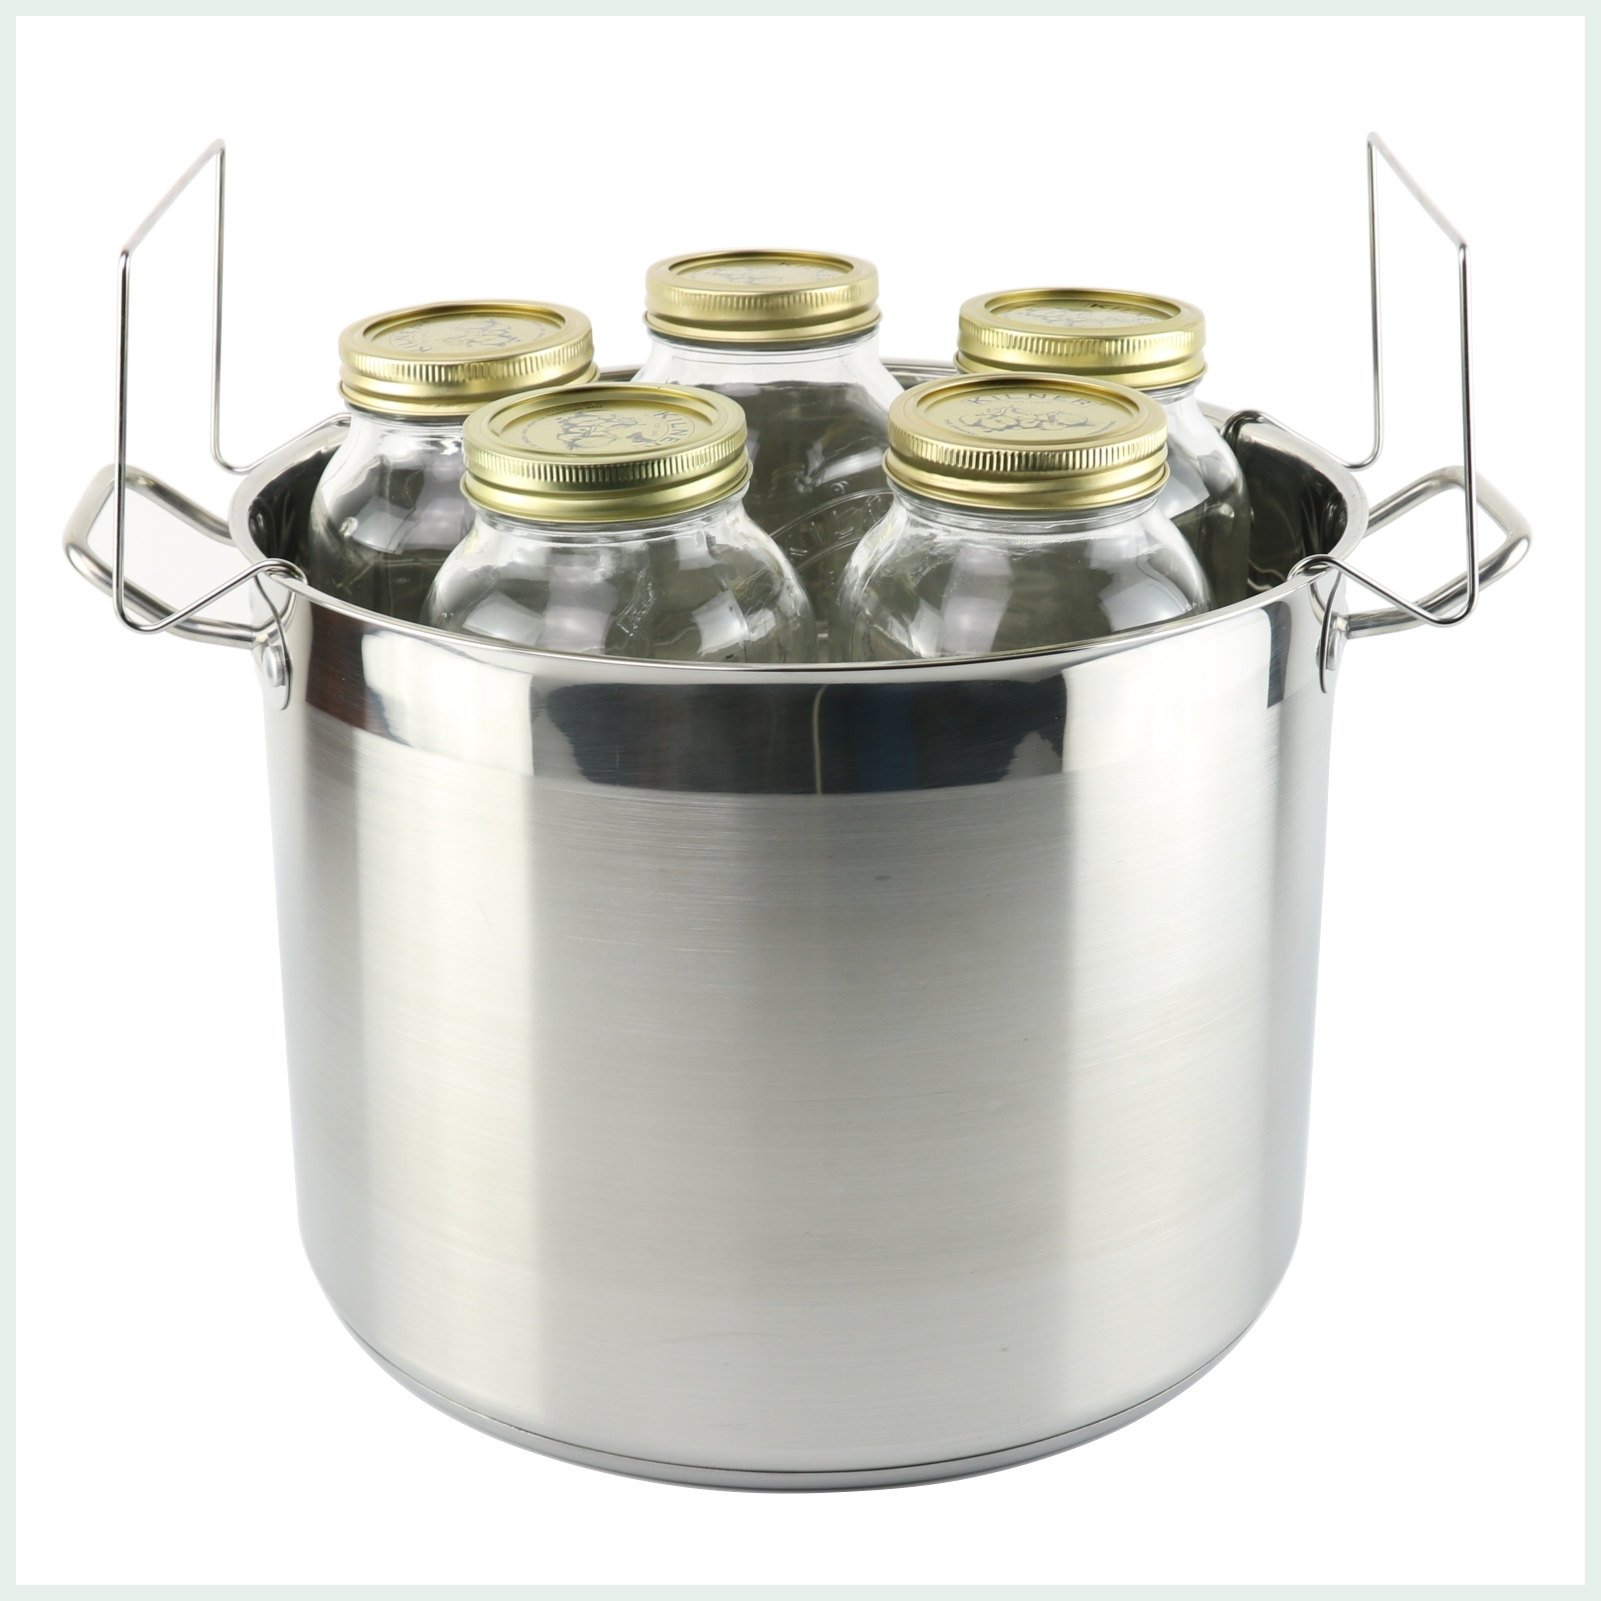 stainless steel water bath cannner with canner rack for 5 x 1L canning jars